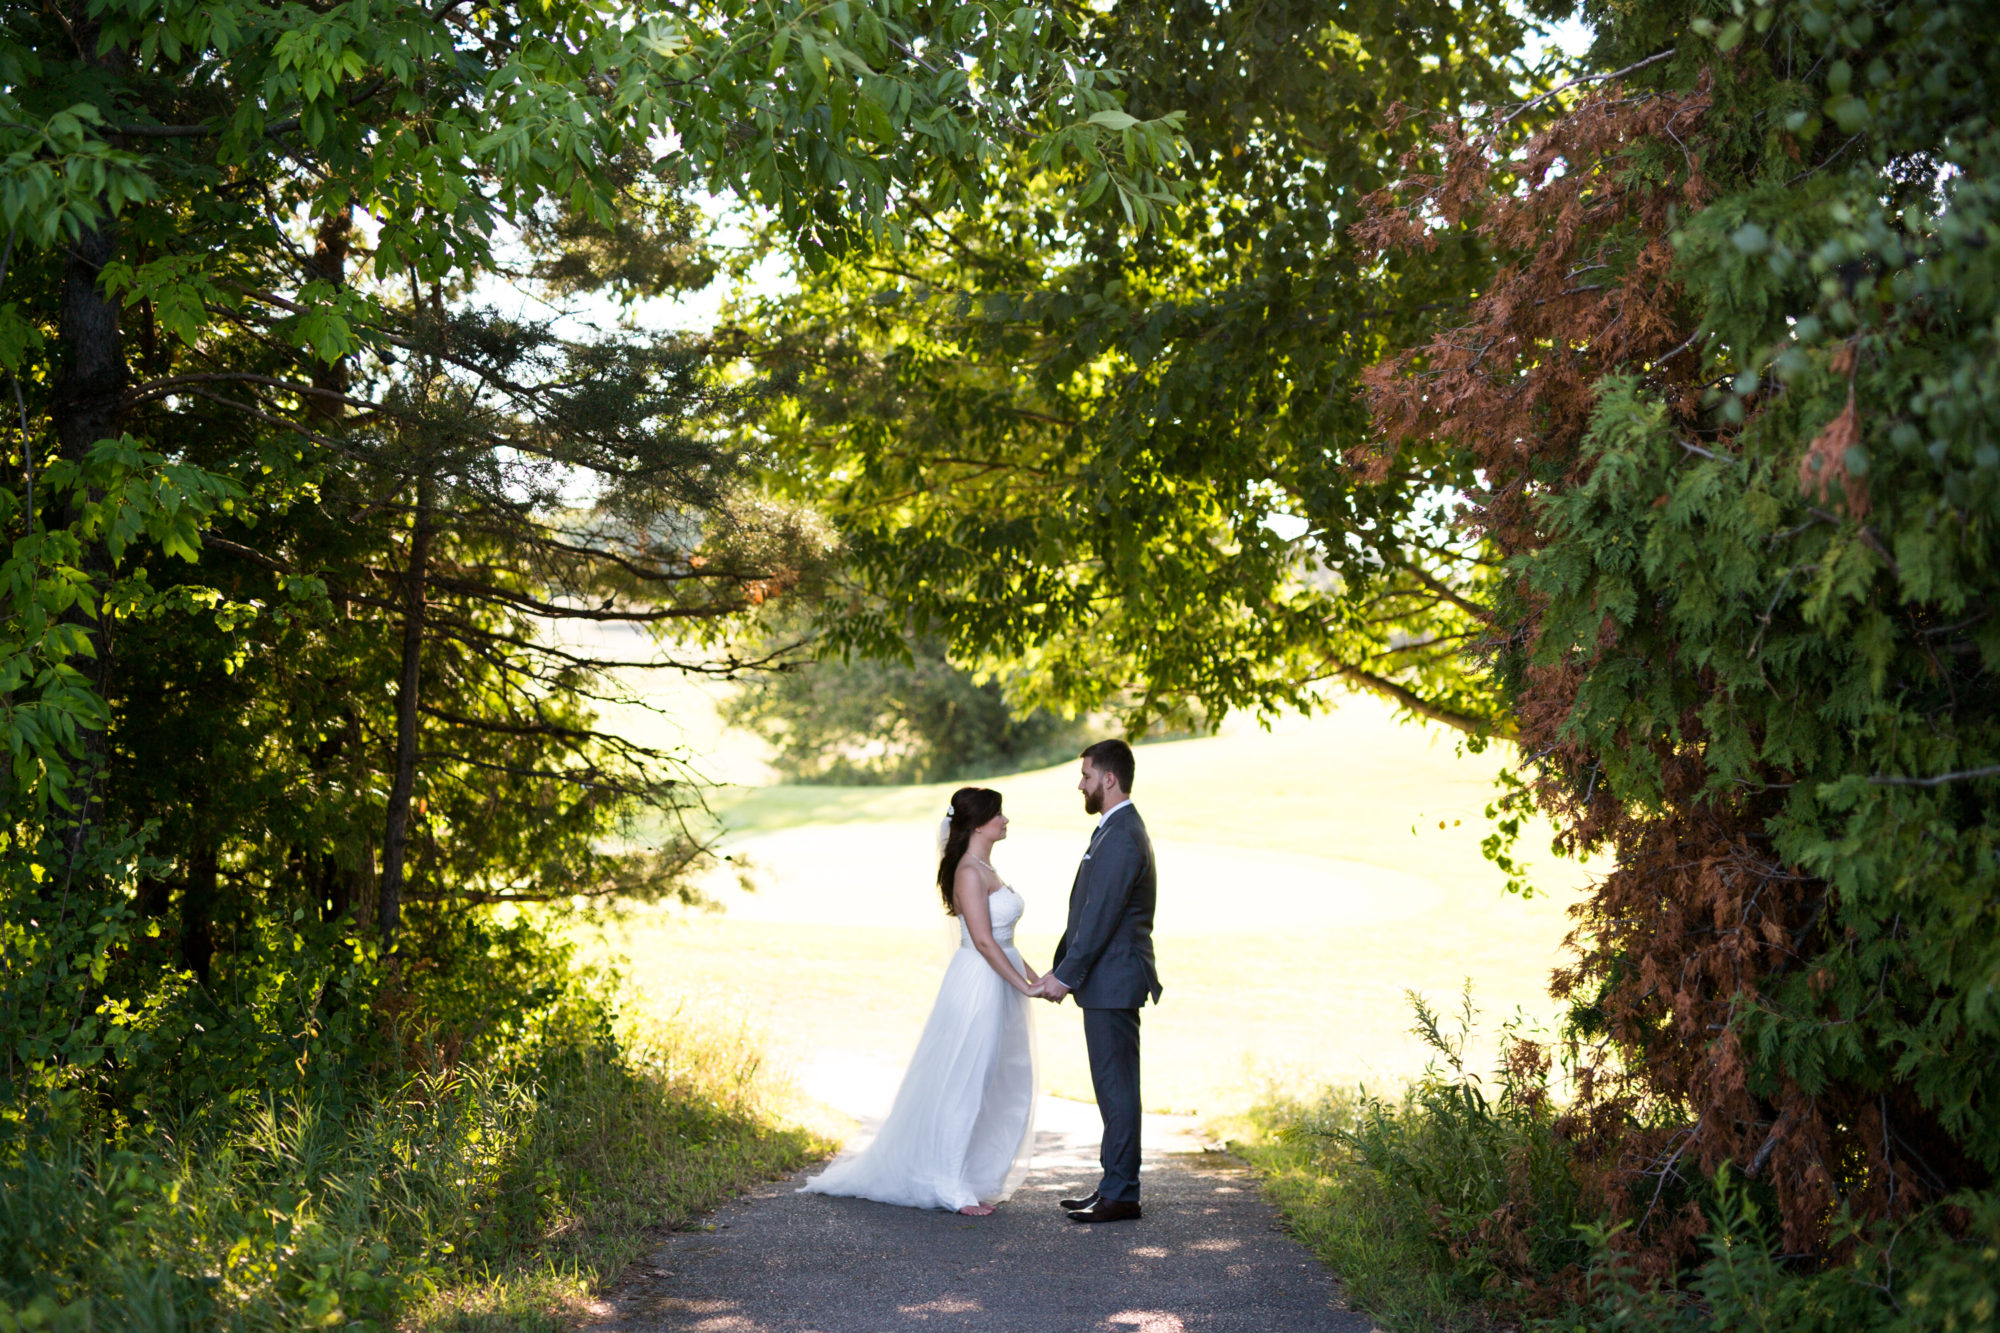 Golf Course Bride Groom Wedding King City Zsuzsi Pal Photography